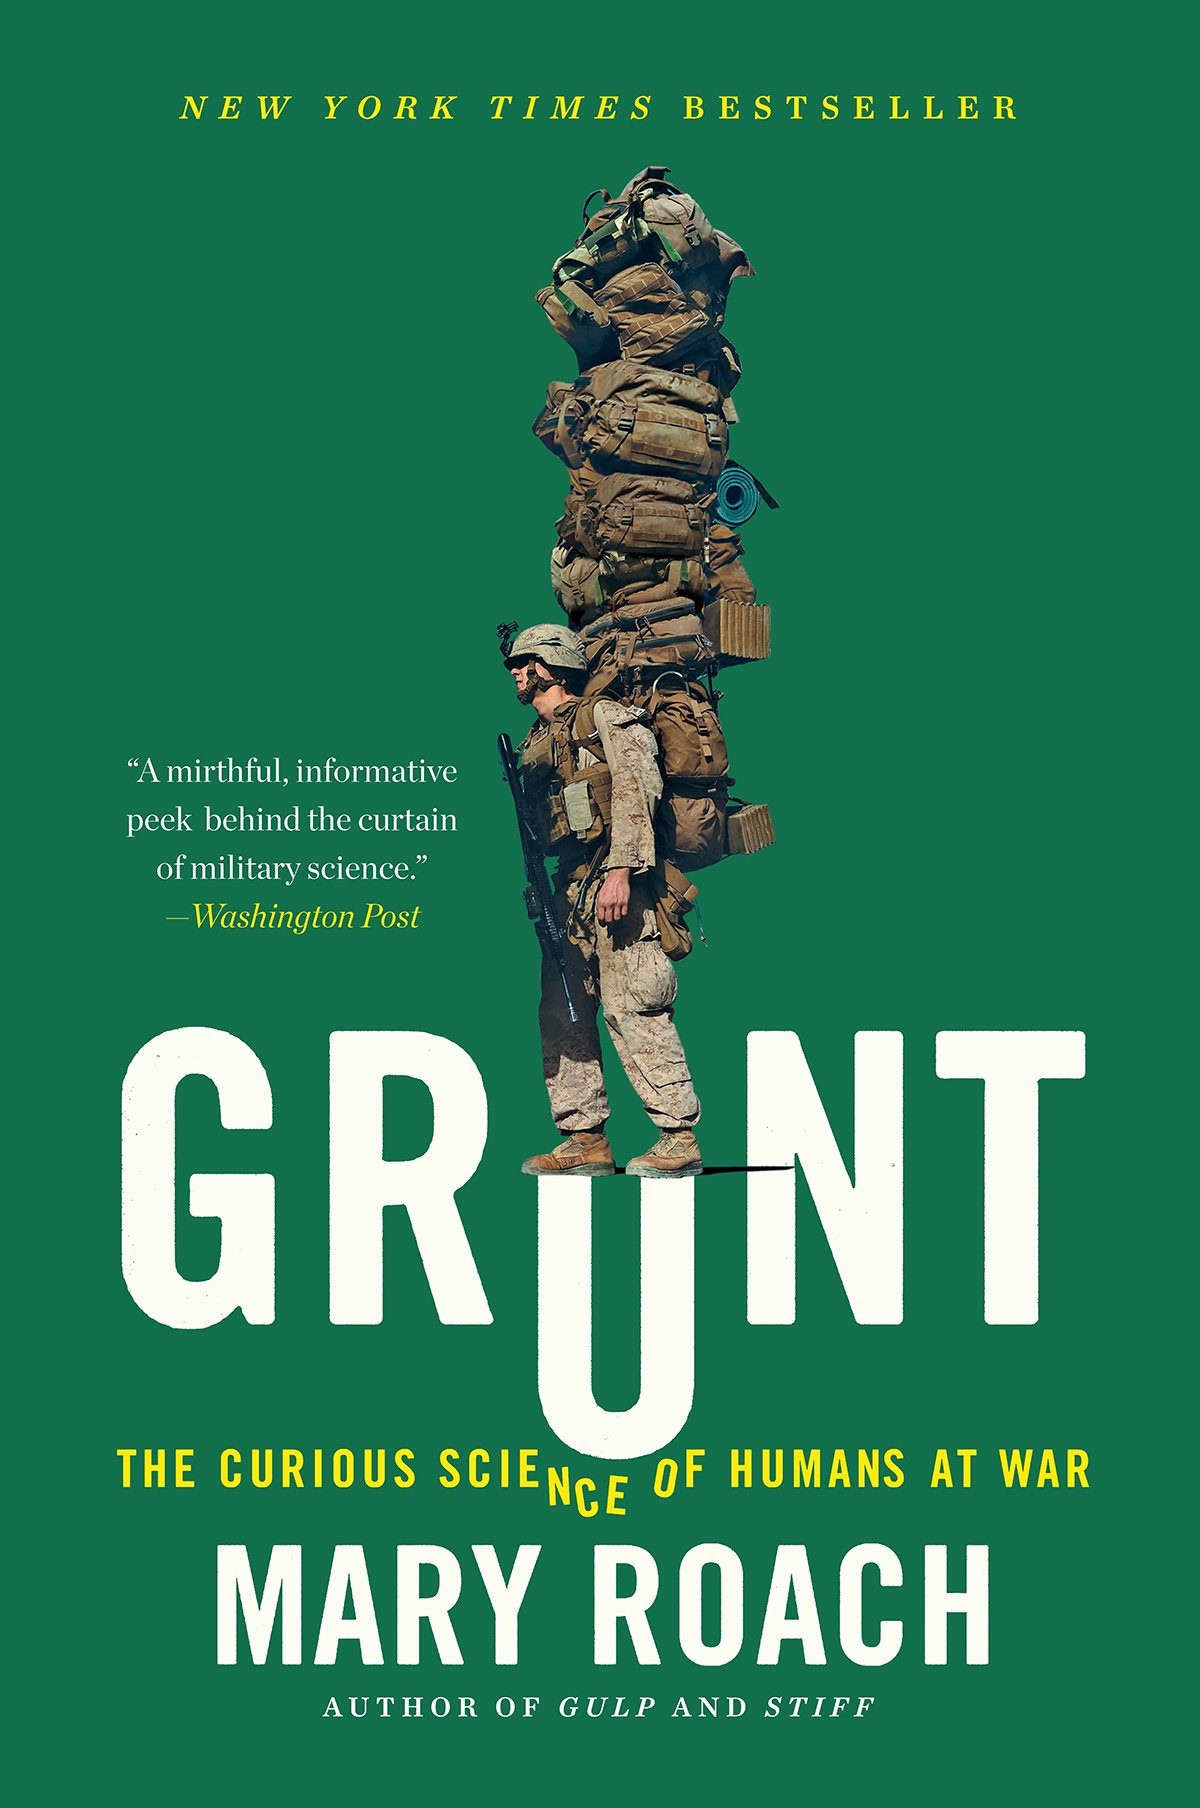 Book cover of Grunt: The Curious Science of Humans at War by Mary Roach